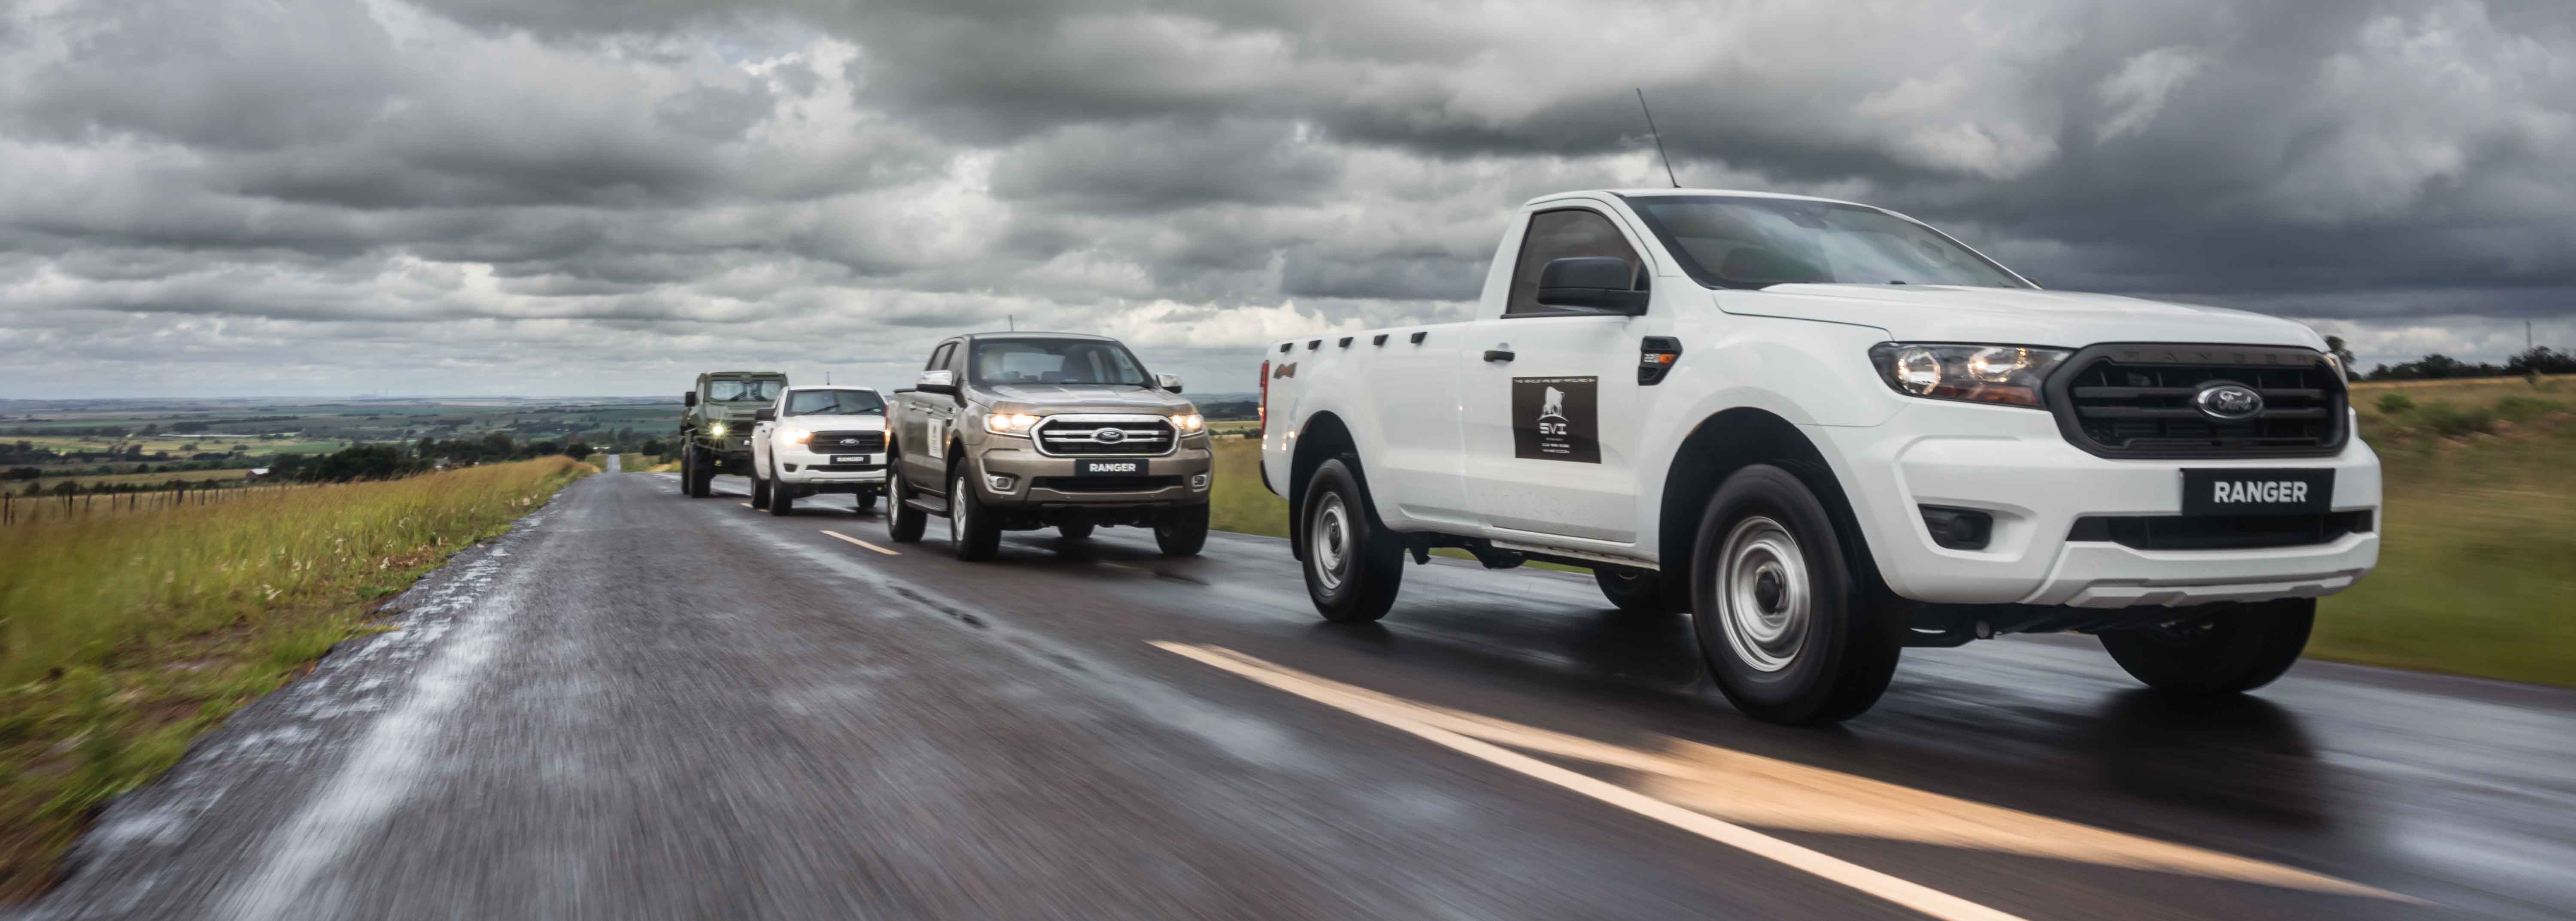 Bulletproof Ford Ranger now available